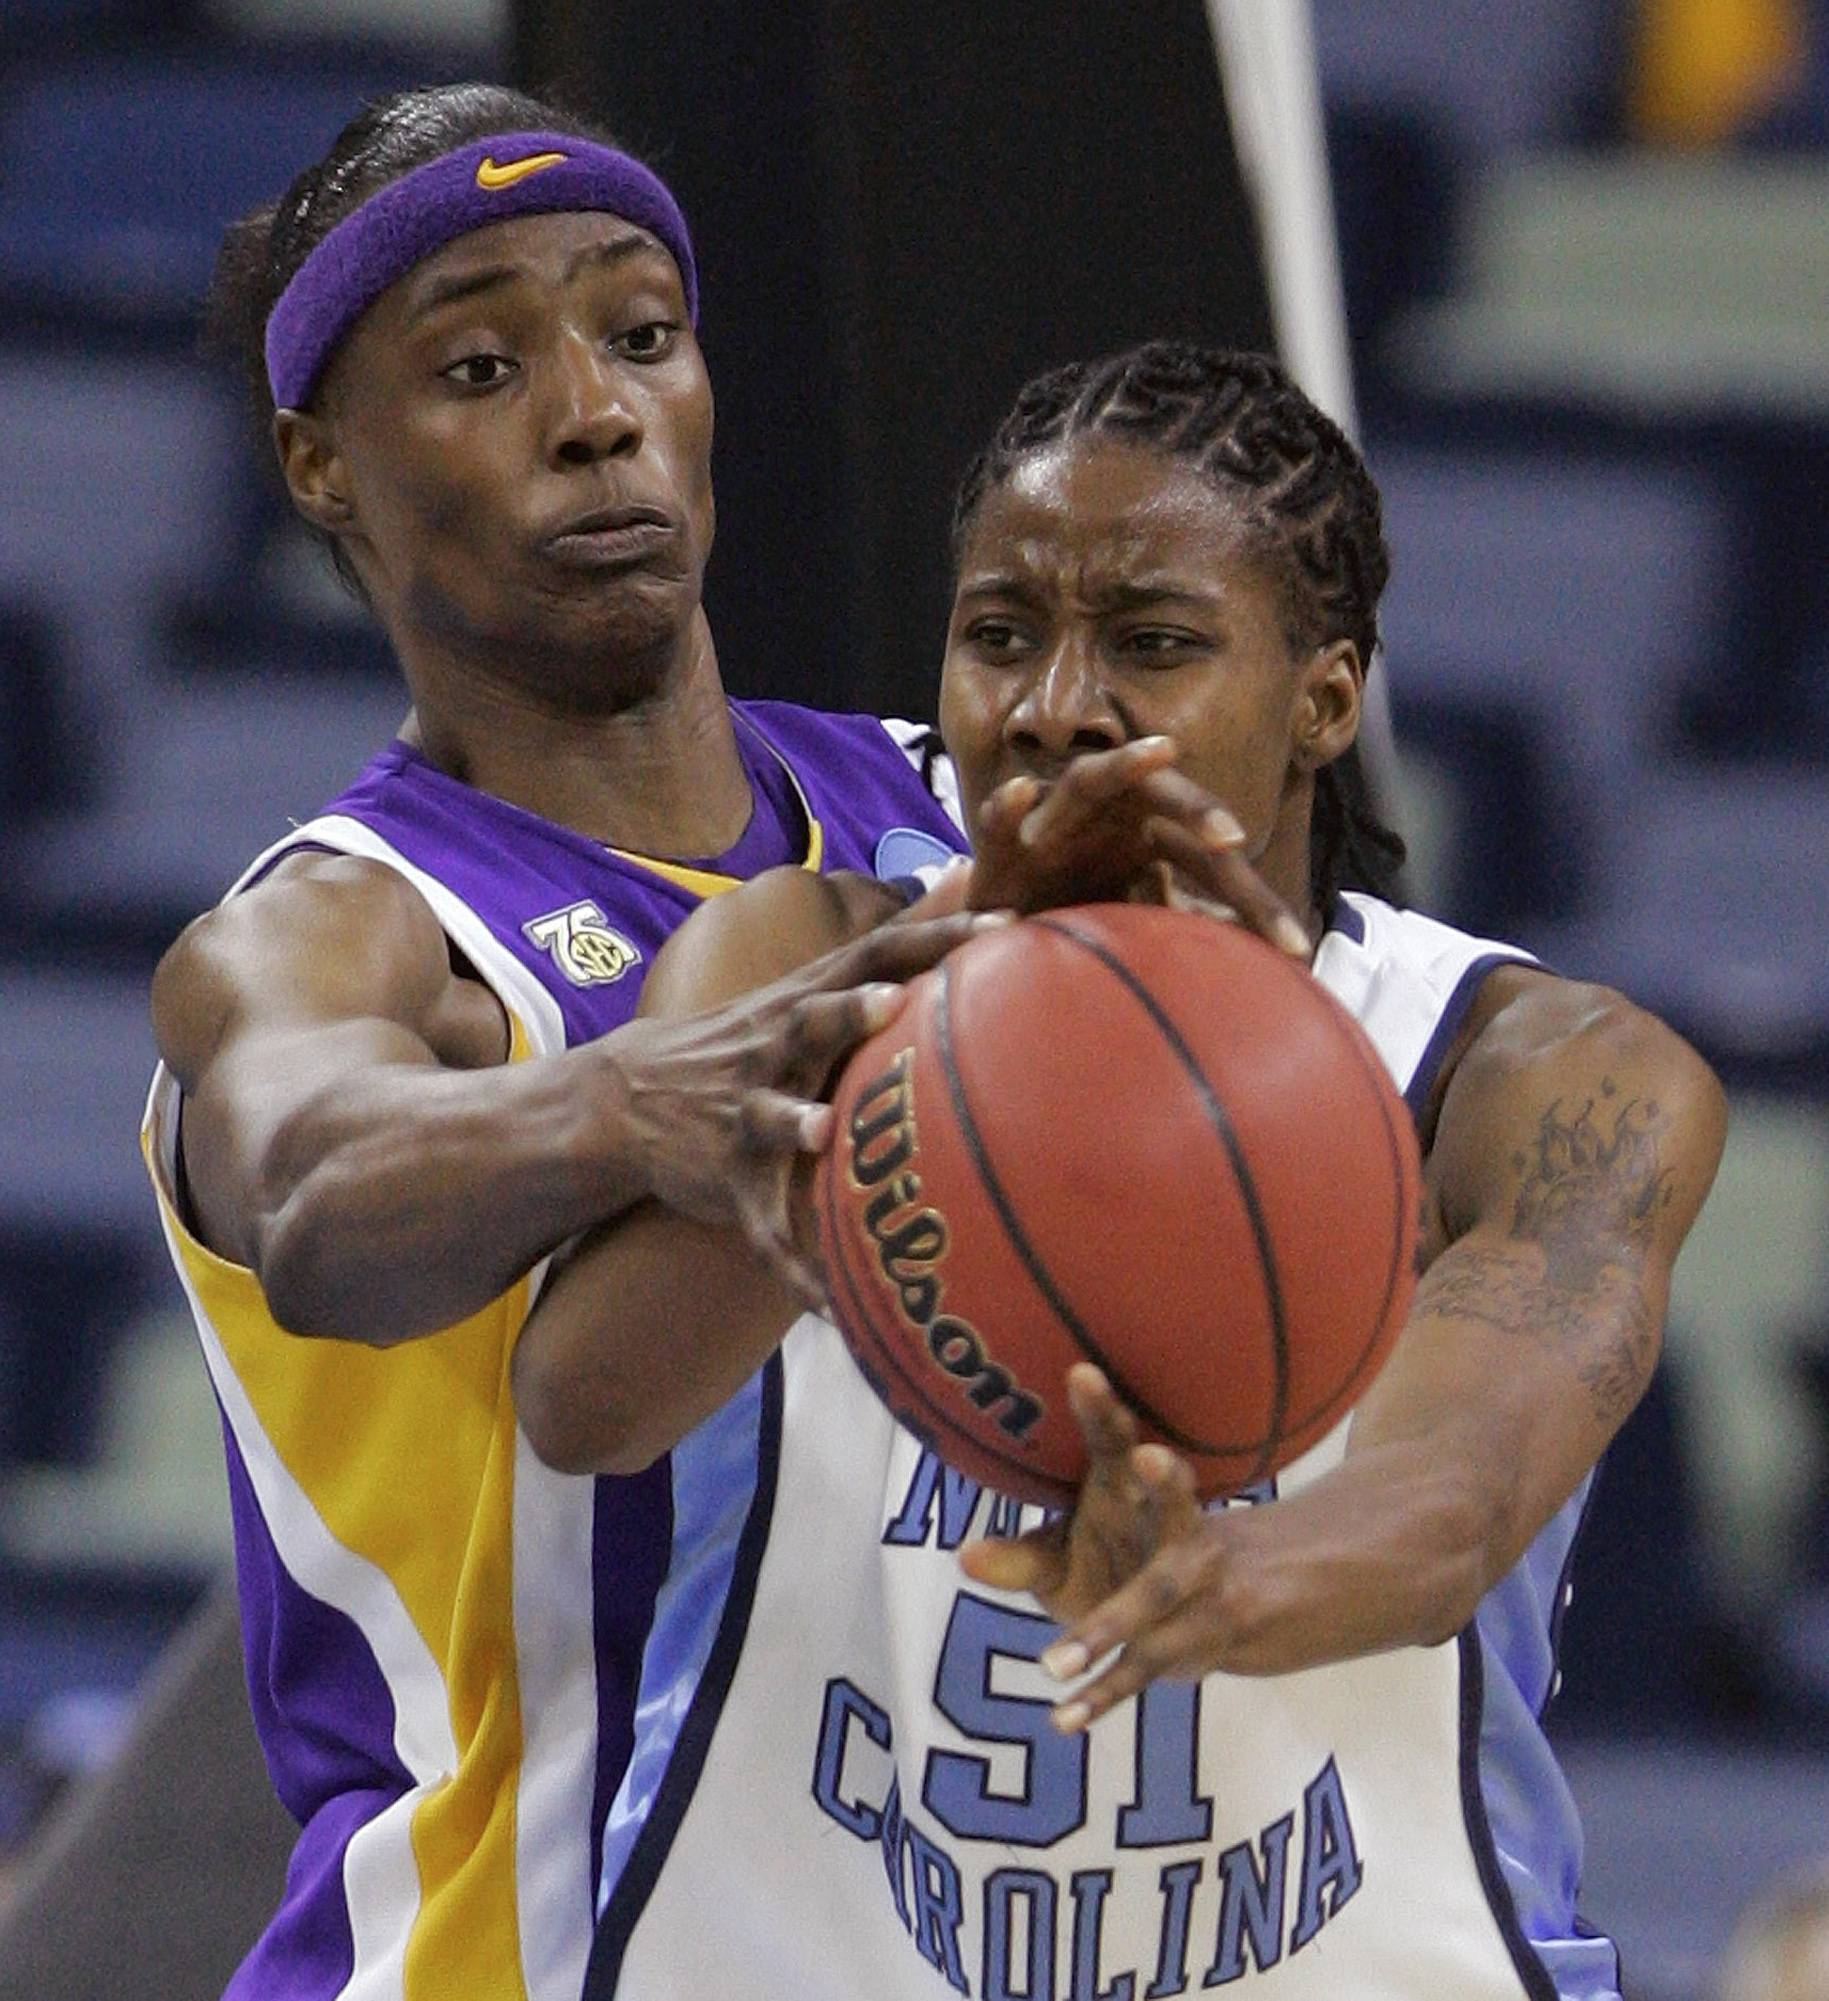 LSU's Sylvia Fowles, left, reaches for the ball against North Carolina's Jessica Breland in NCAA women's basketball tournament action. Fowles and Breland are now teammates on the Chicago Sky.